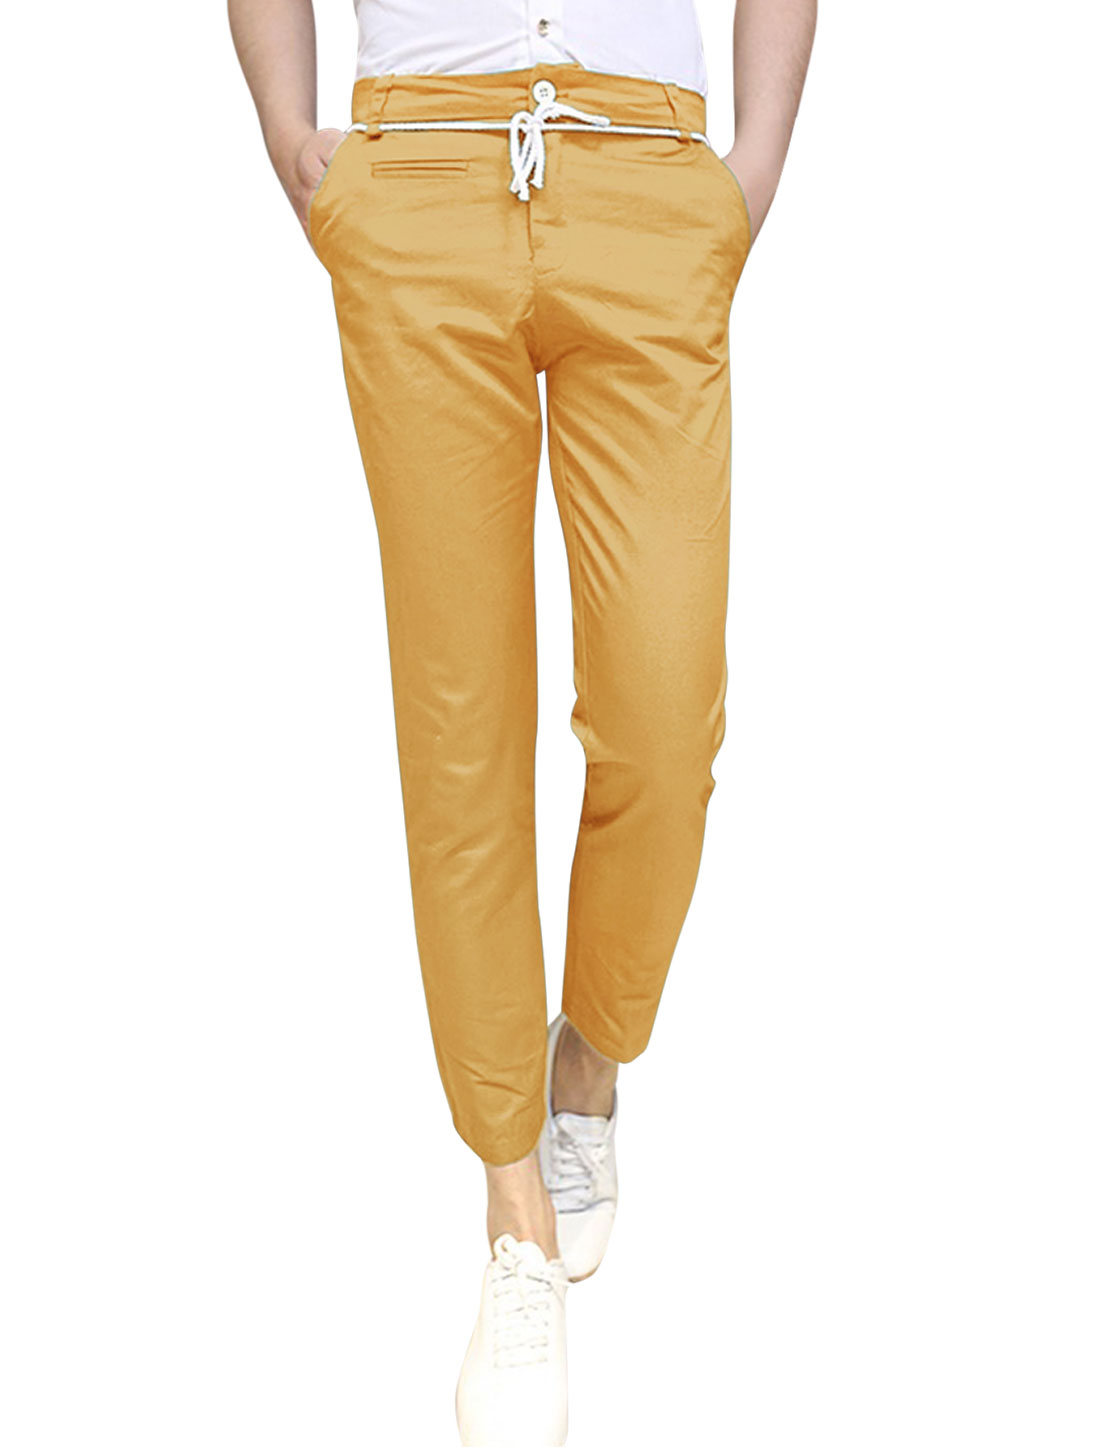 Man Zip Fly Drawstring Waist Slant Front Pockets Cropped Pants Ochre W30